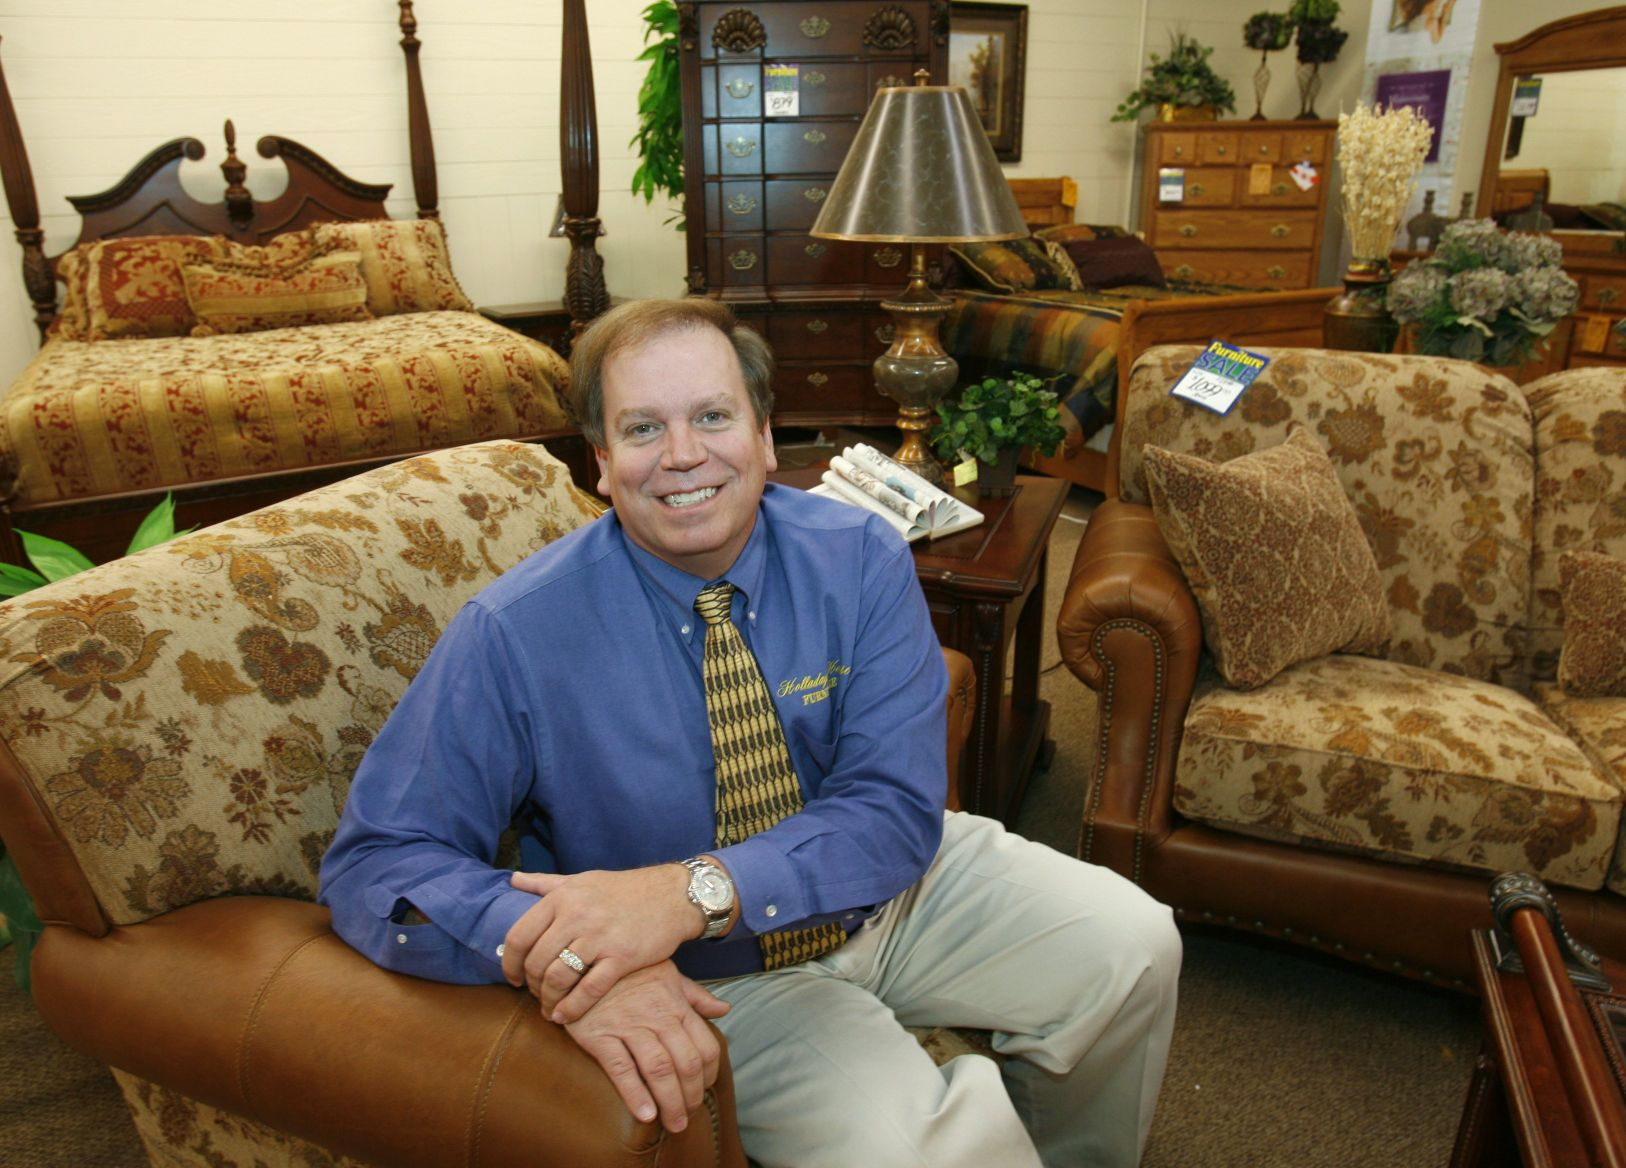 Holladay House And Home Center Inc. Files For Chapter 7 Bankruptcy